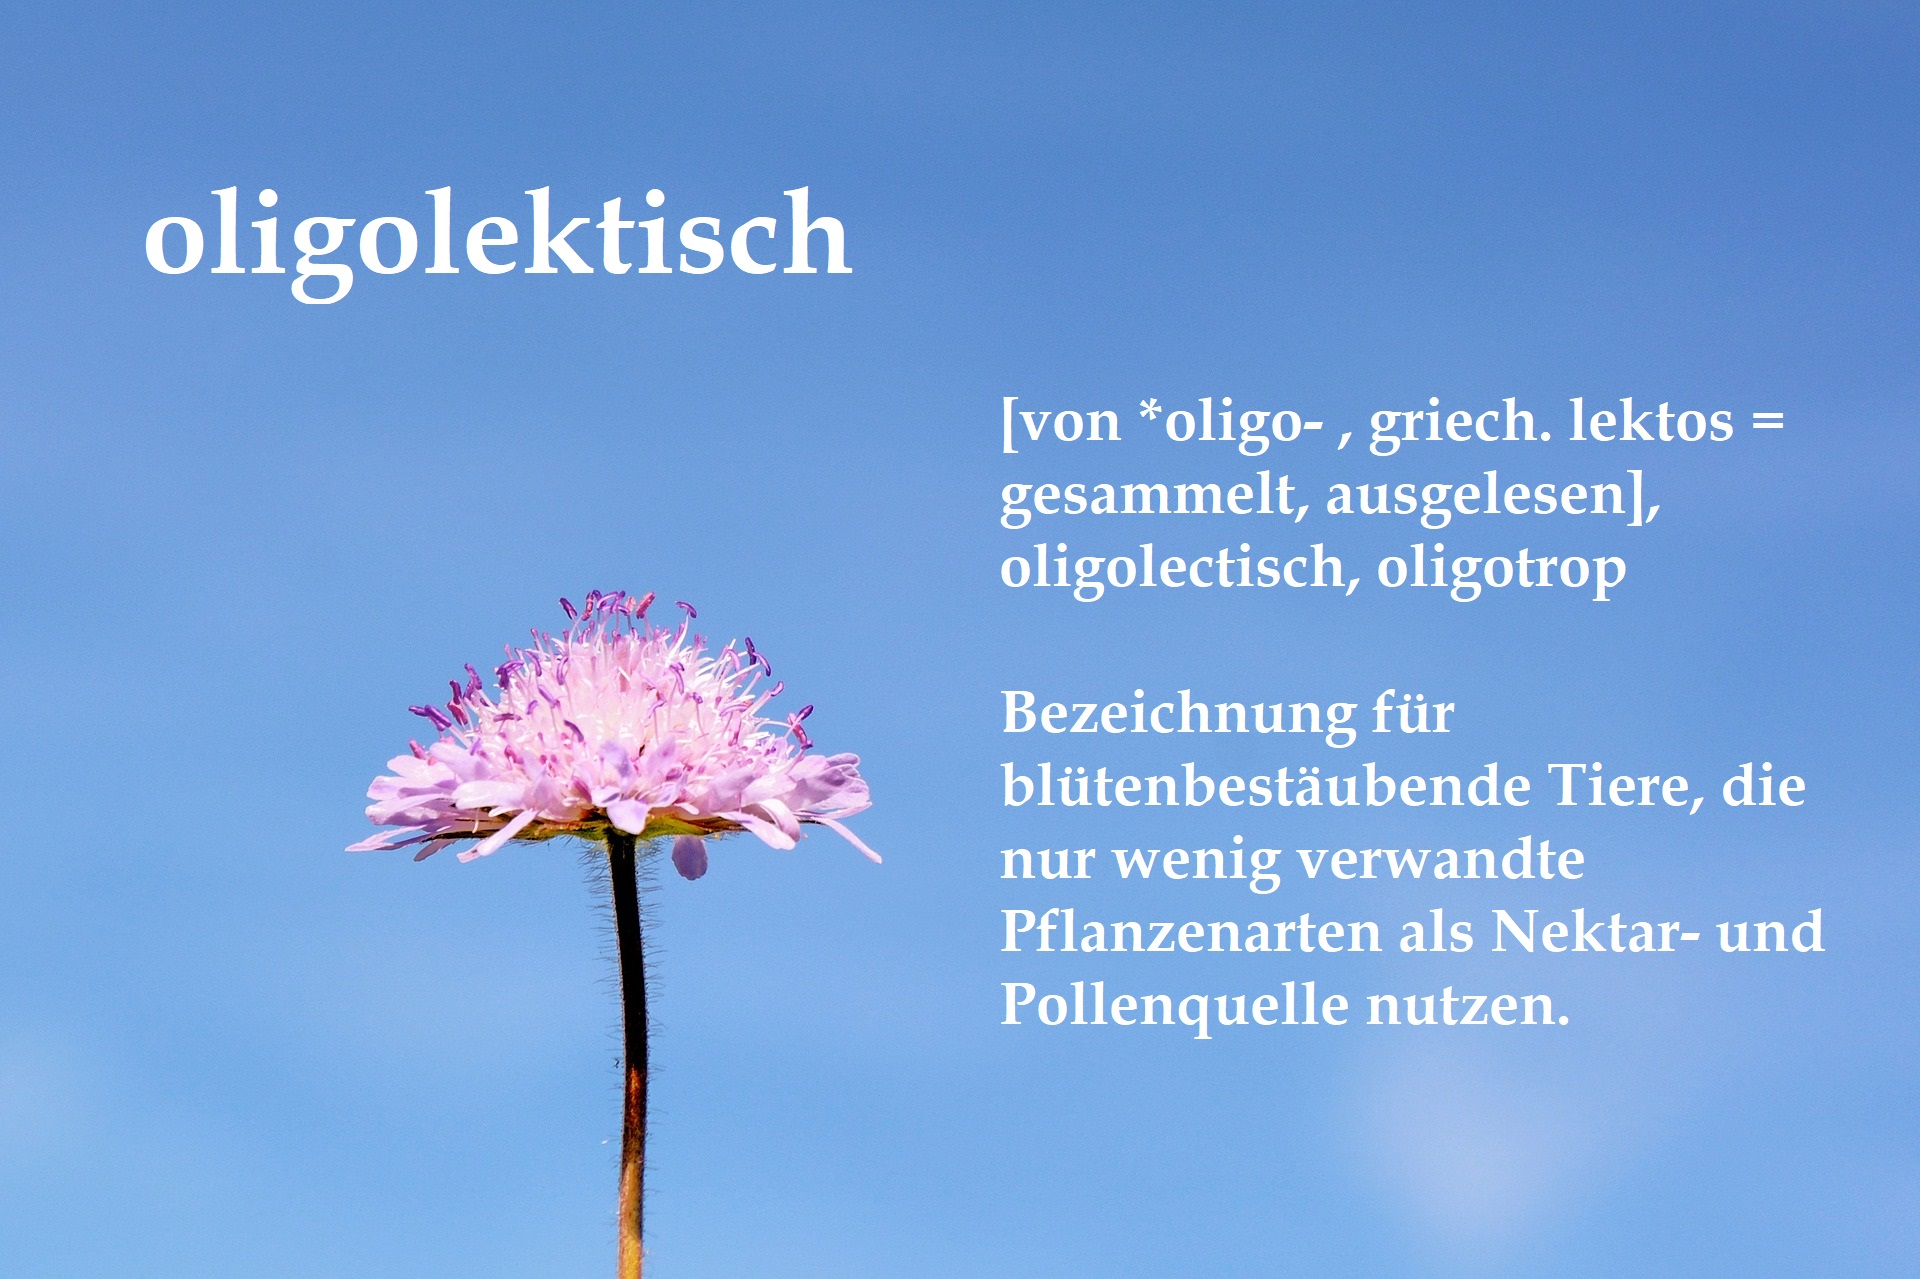 Definition oligolectisch